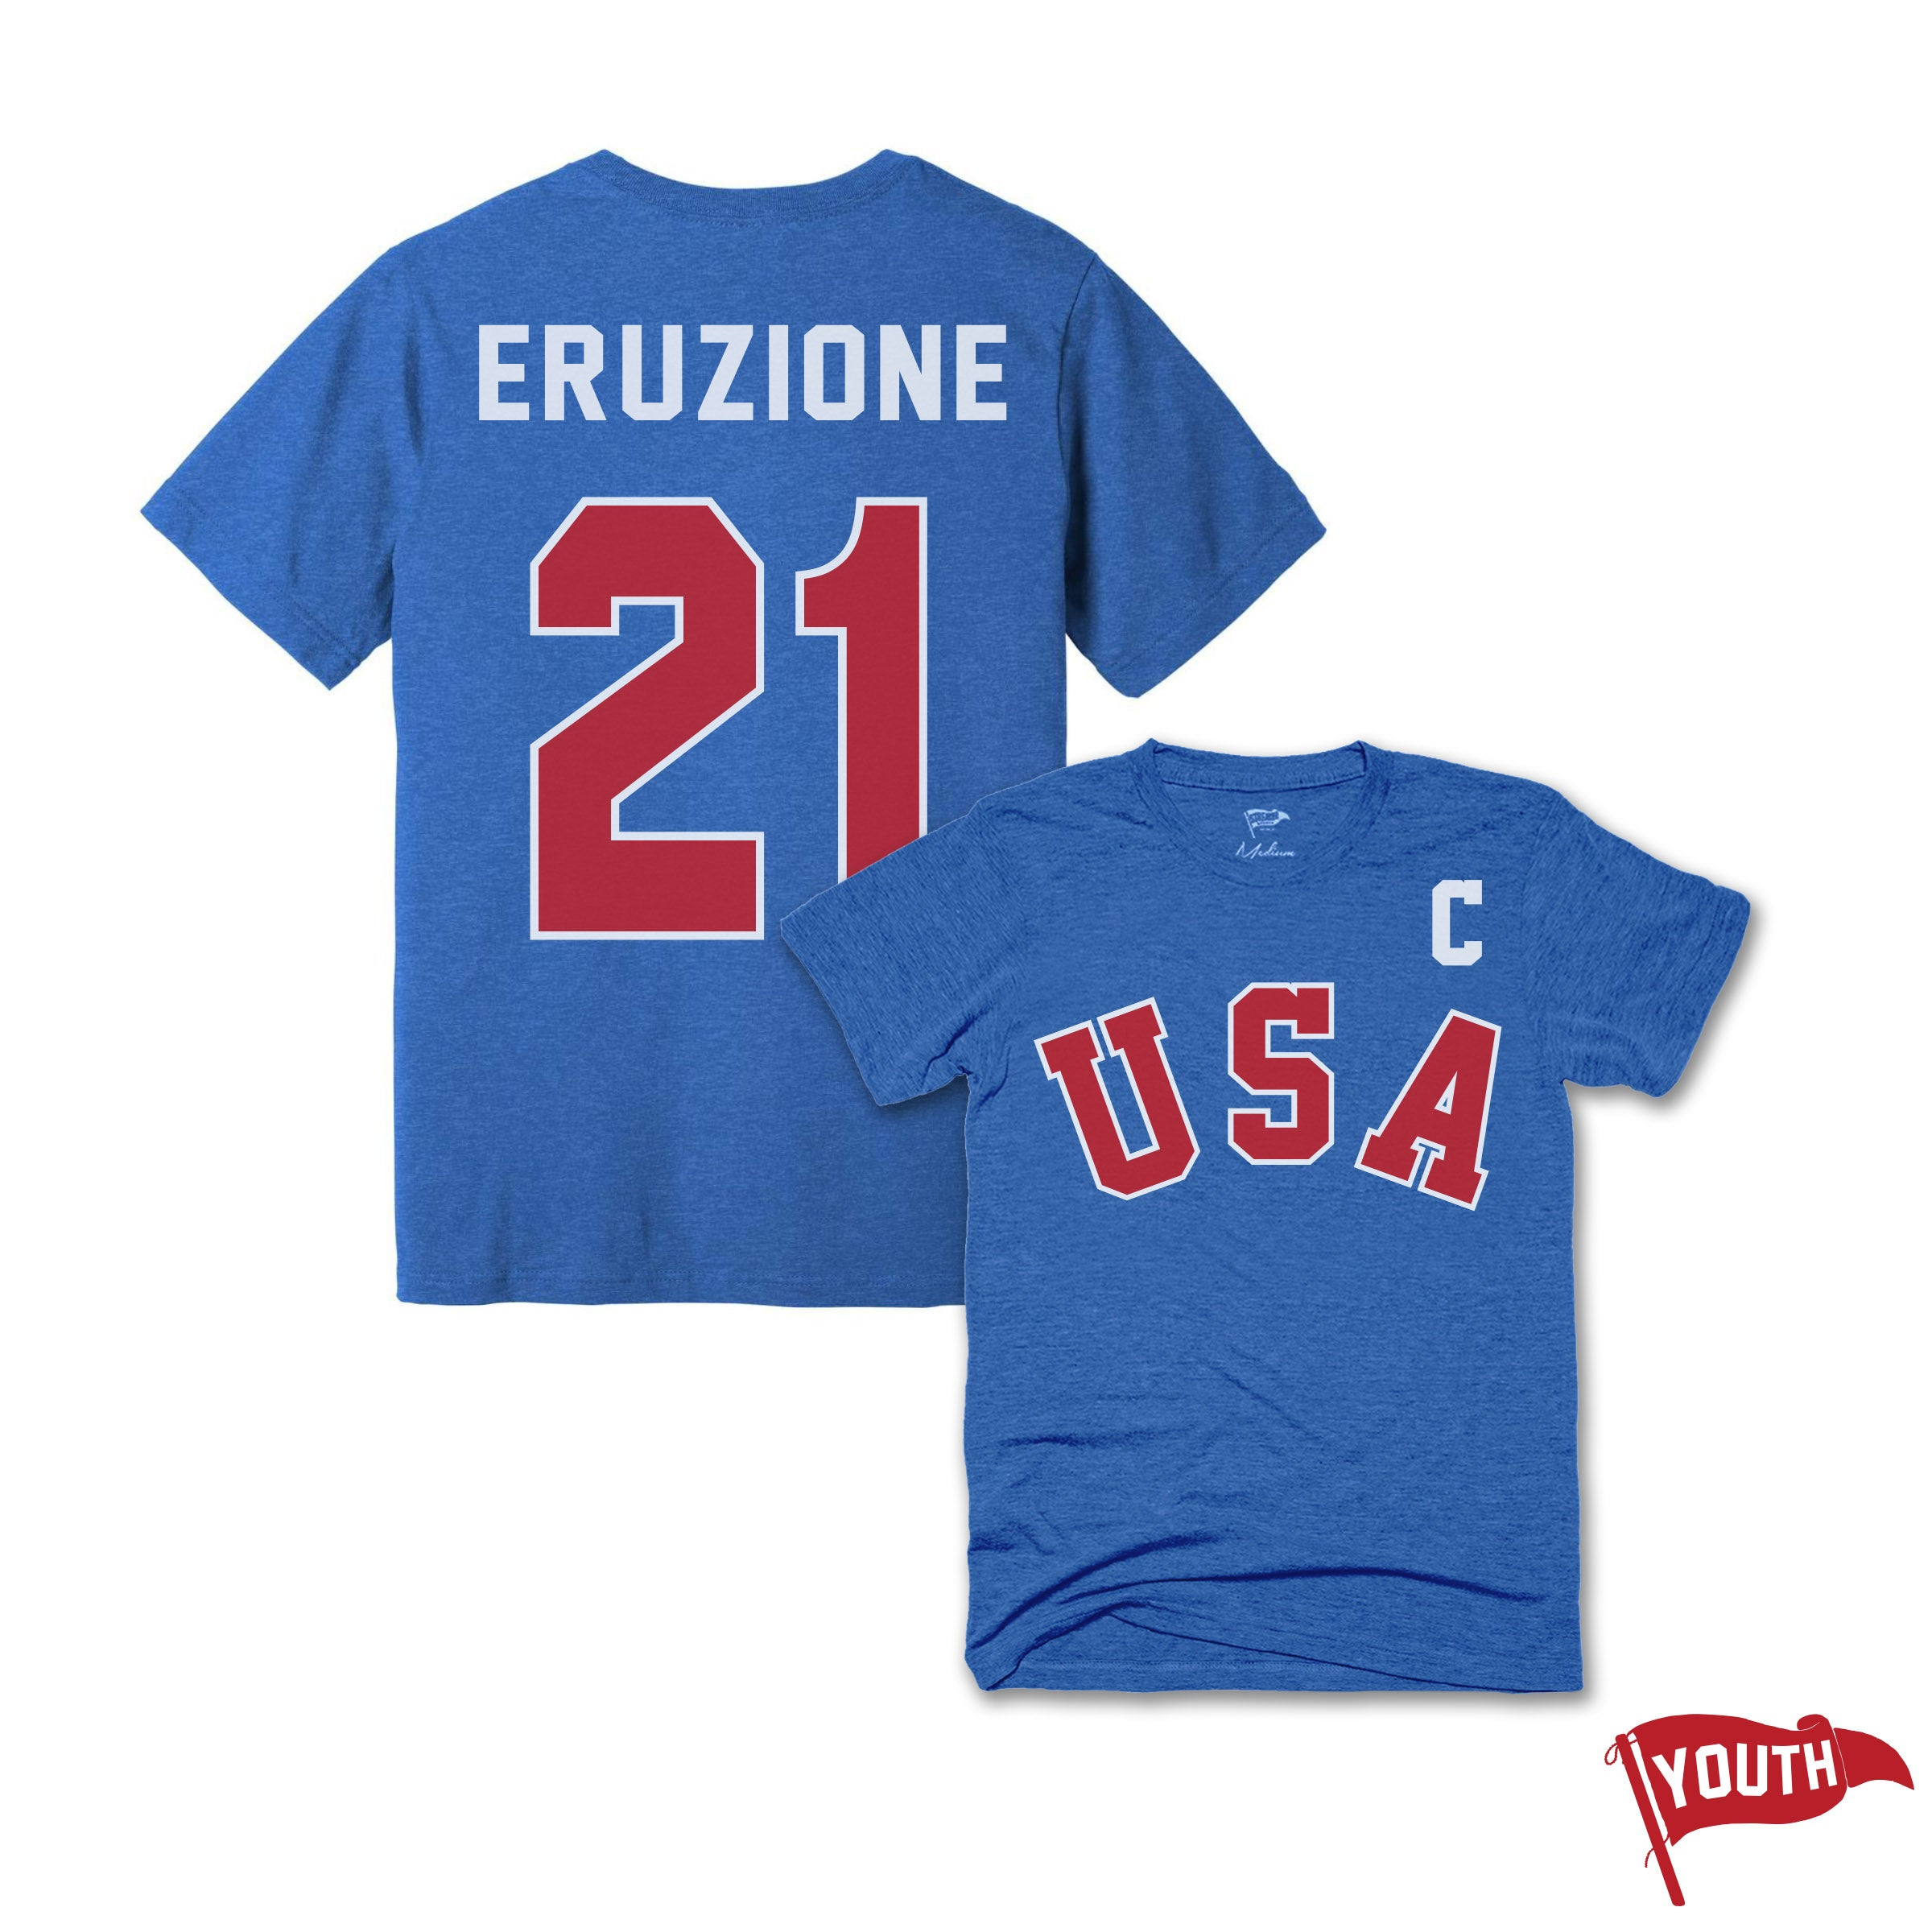 Mike Eruzione 1980 Miracle Youth Jersey Tee